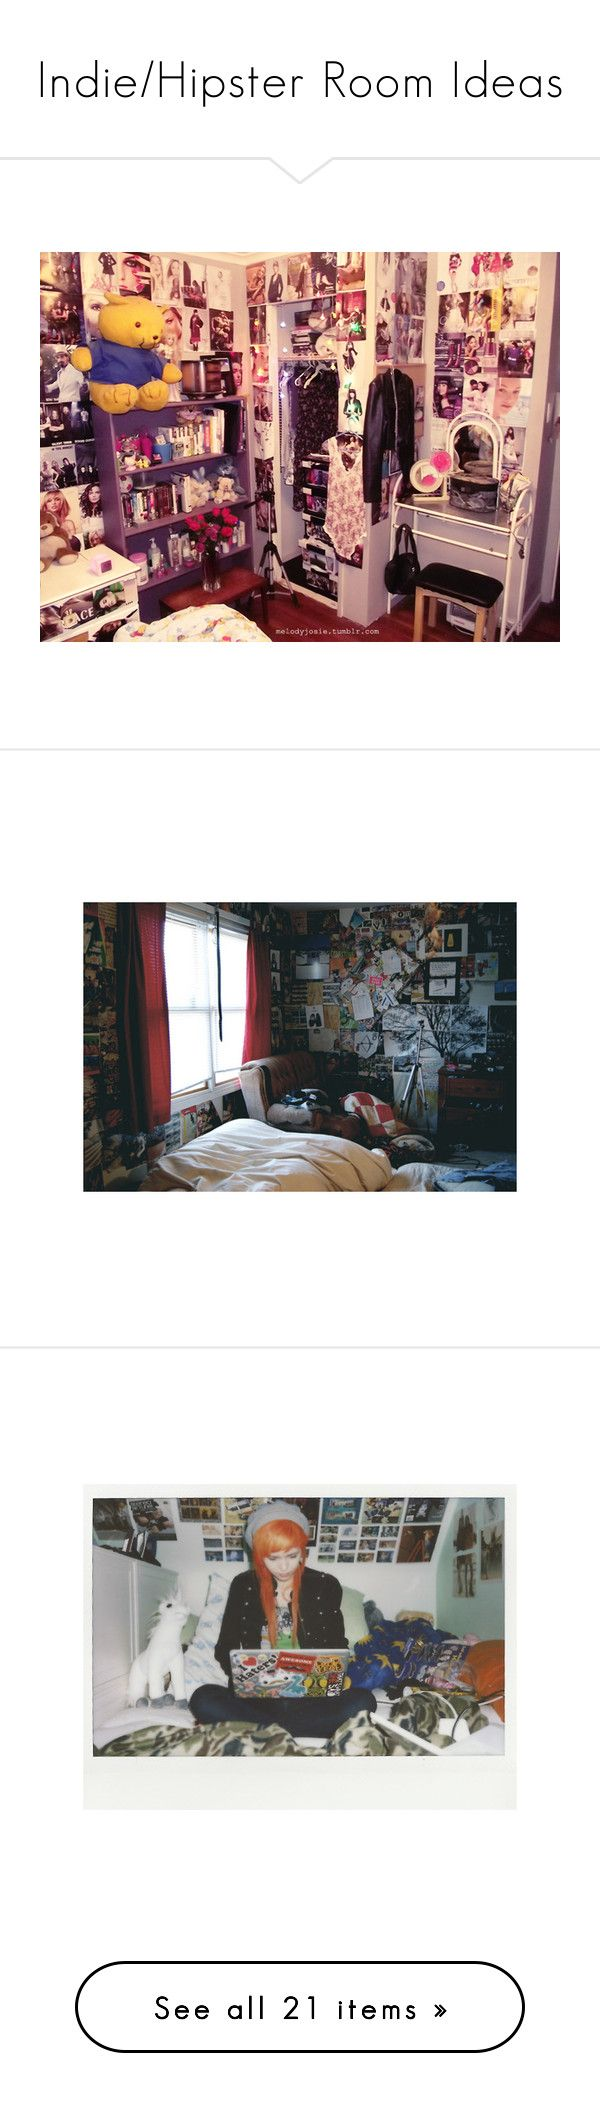 17 Best Ideas About Indie Hipster Room On Pinterest